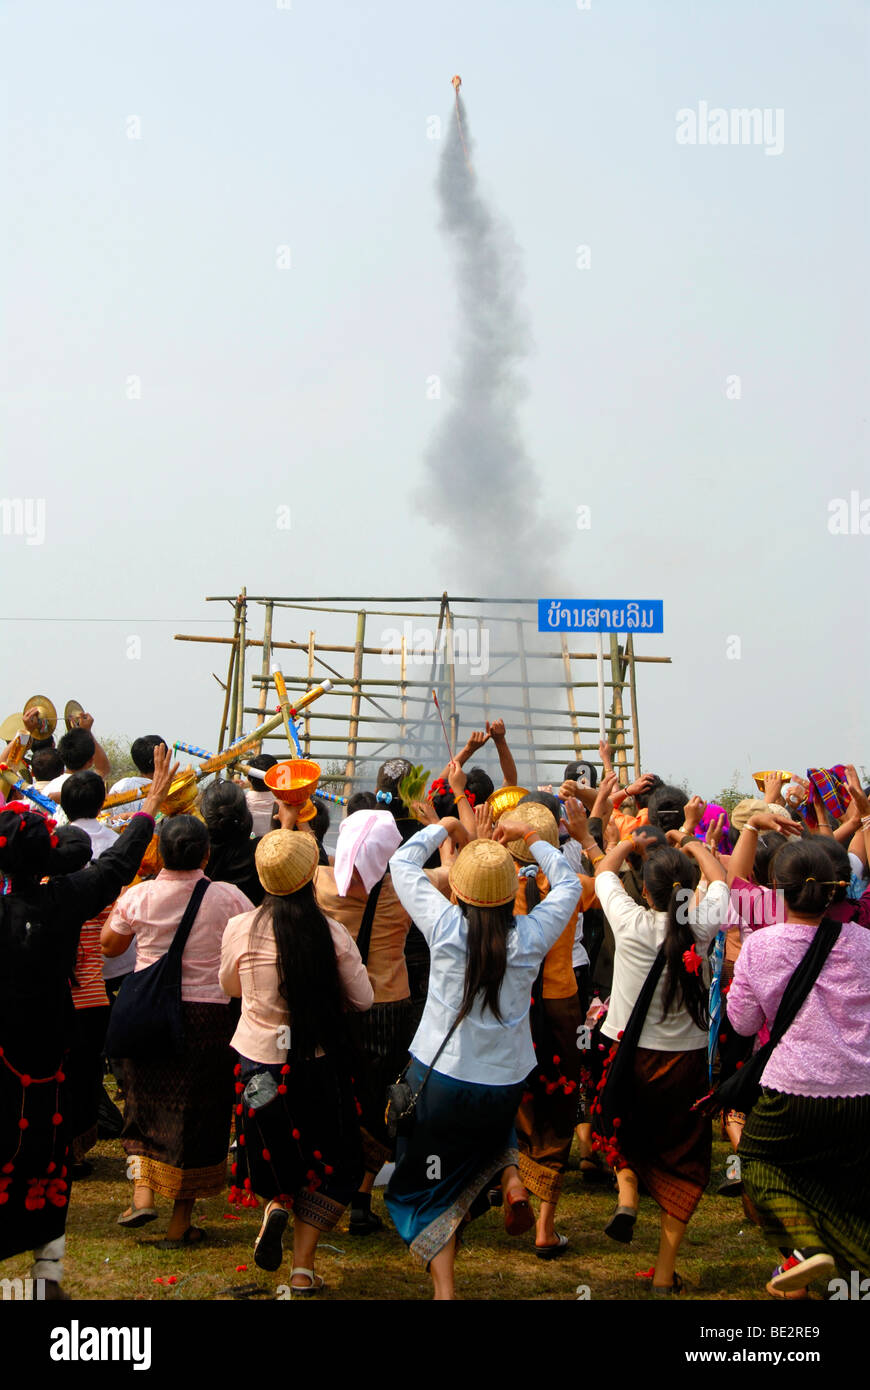 Fireworks rocket shortly after launch from the launch pad flying into the sky, rejoicing Phunoi people, Pi Mai - Stock Image